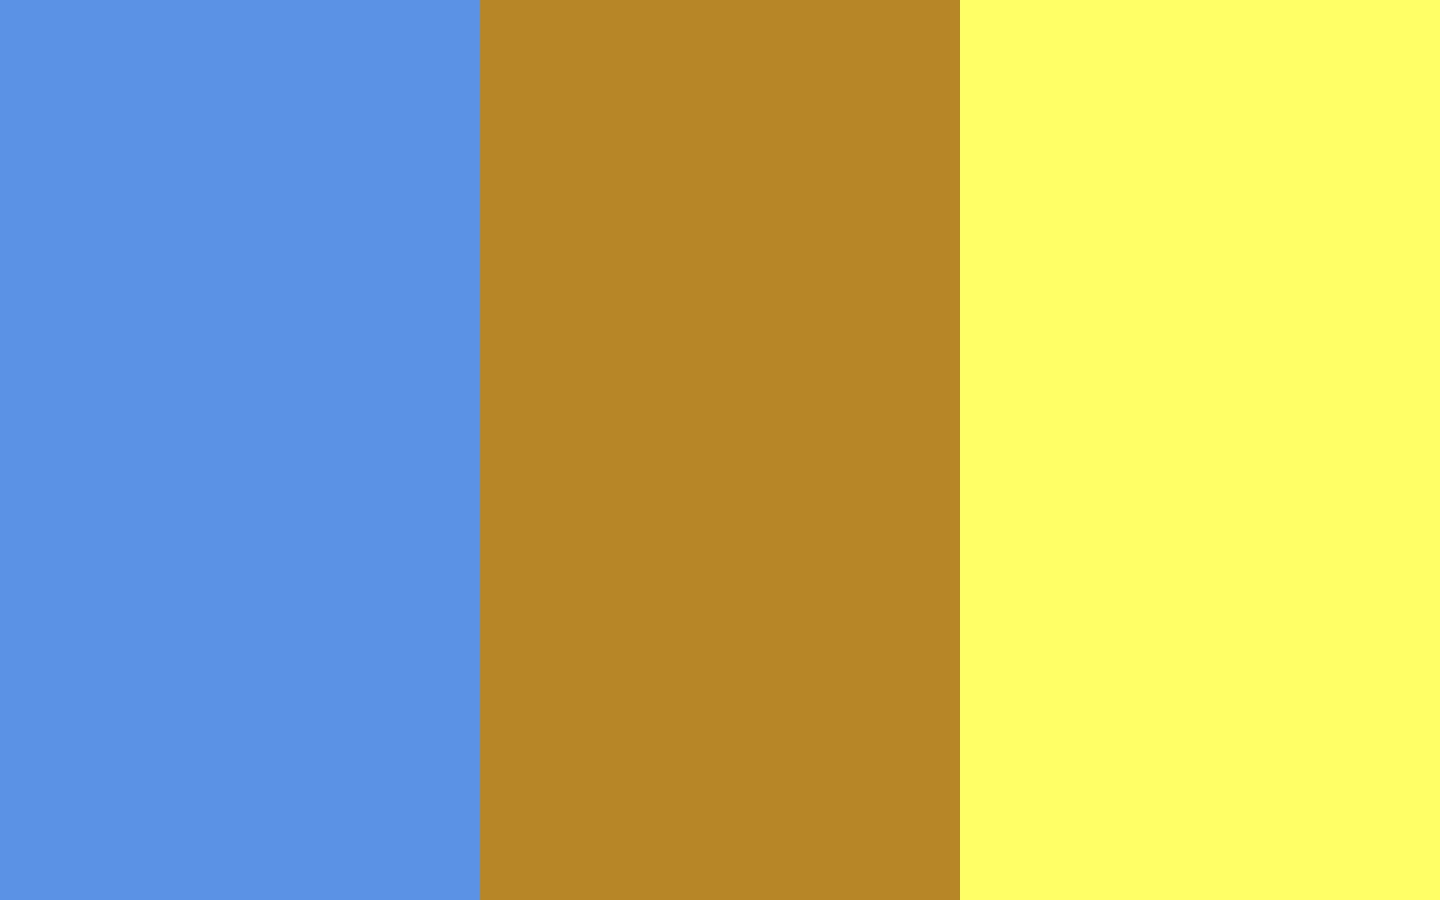 Nations Blue And University Of California Gold Two Color Background